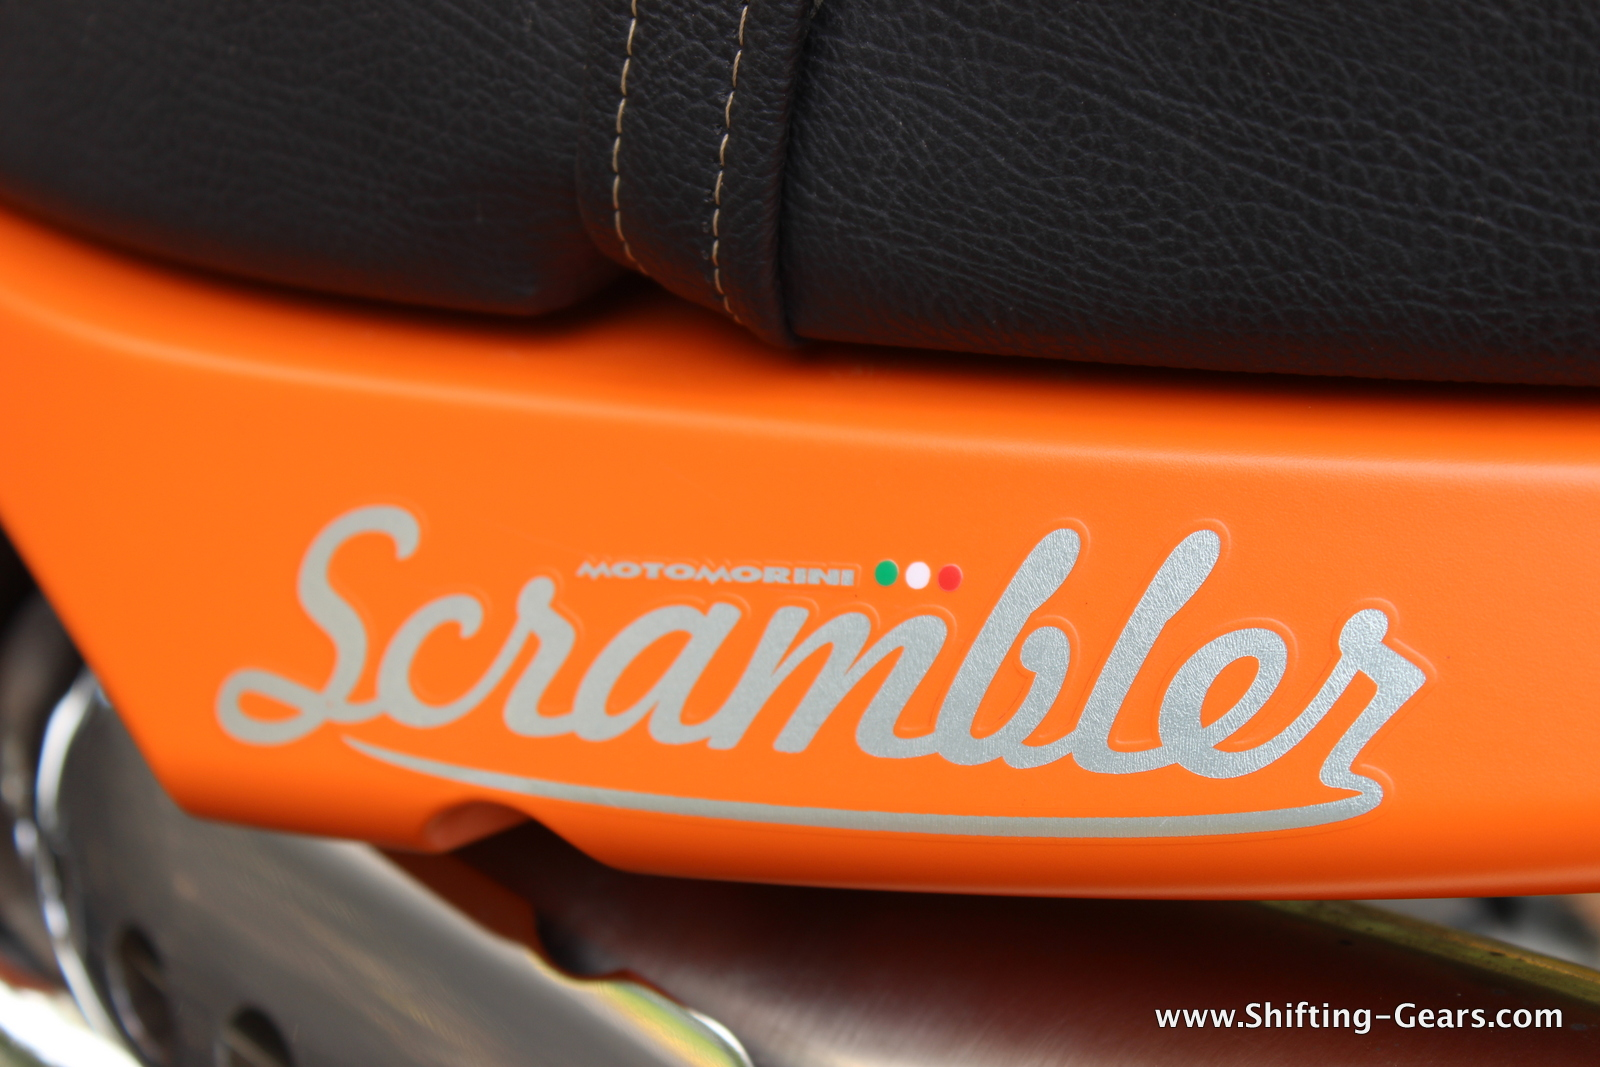 The Scrambler decal with a small Italian flag under the pillion seat